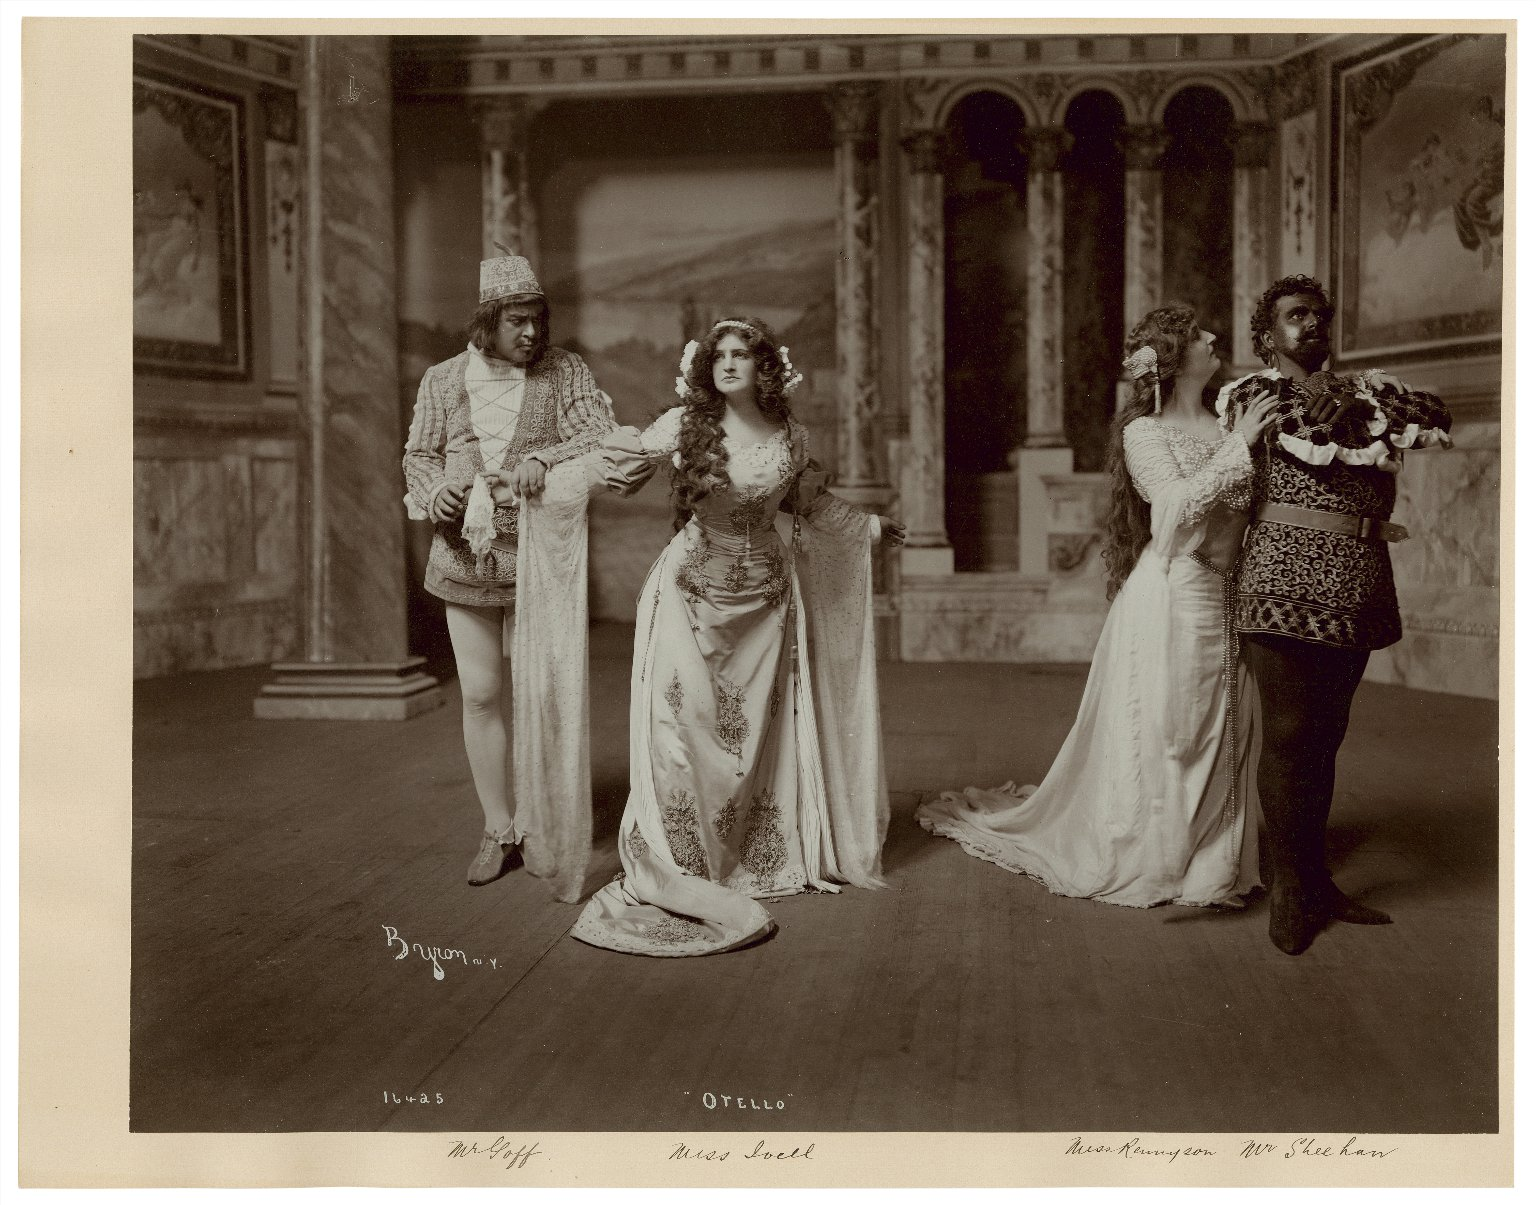 Otello [4 photographs of a production starring Joseph Sheehan as Othello, Gertrude Rennyson as Desdemona, Winfred Goff as Iago, Marion Ivell as Emilia, and Charles Fulton as Cassio] [graphic] / Byron, N.Y.